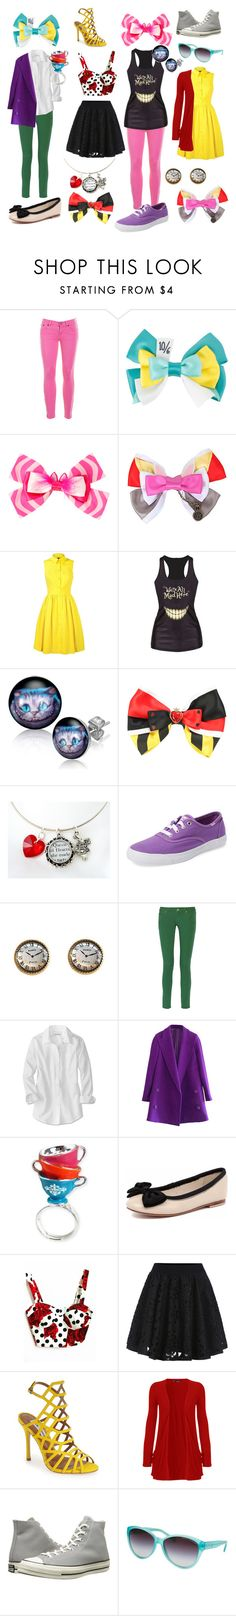 """Disney Squad 3"" by lemonsourpatchkid ❤ liked on Polyvore featuring J.Crew, Disney, Karen Millen, Keds, M Missoni, Disney Couture, Human Premium, WithChic, Steve Madden and WearAll"